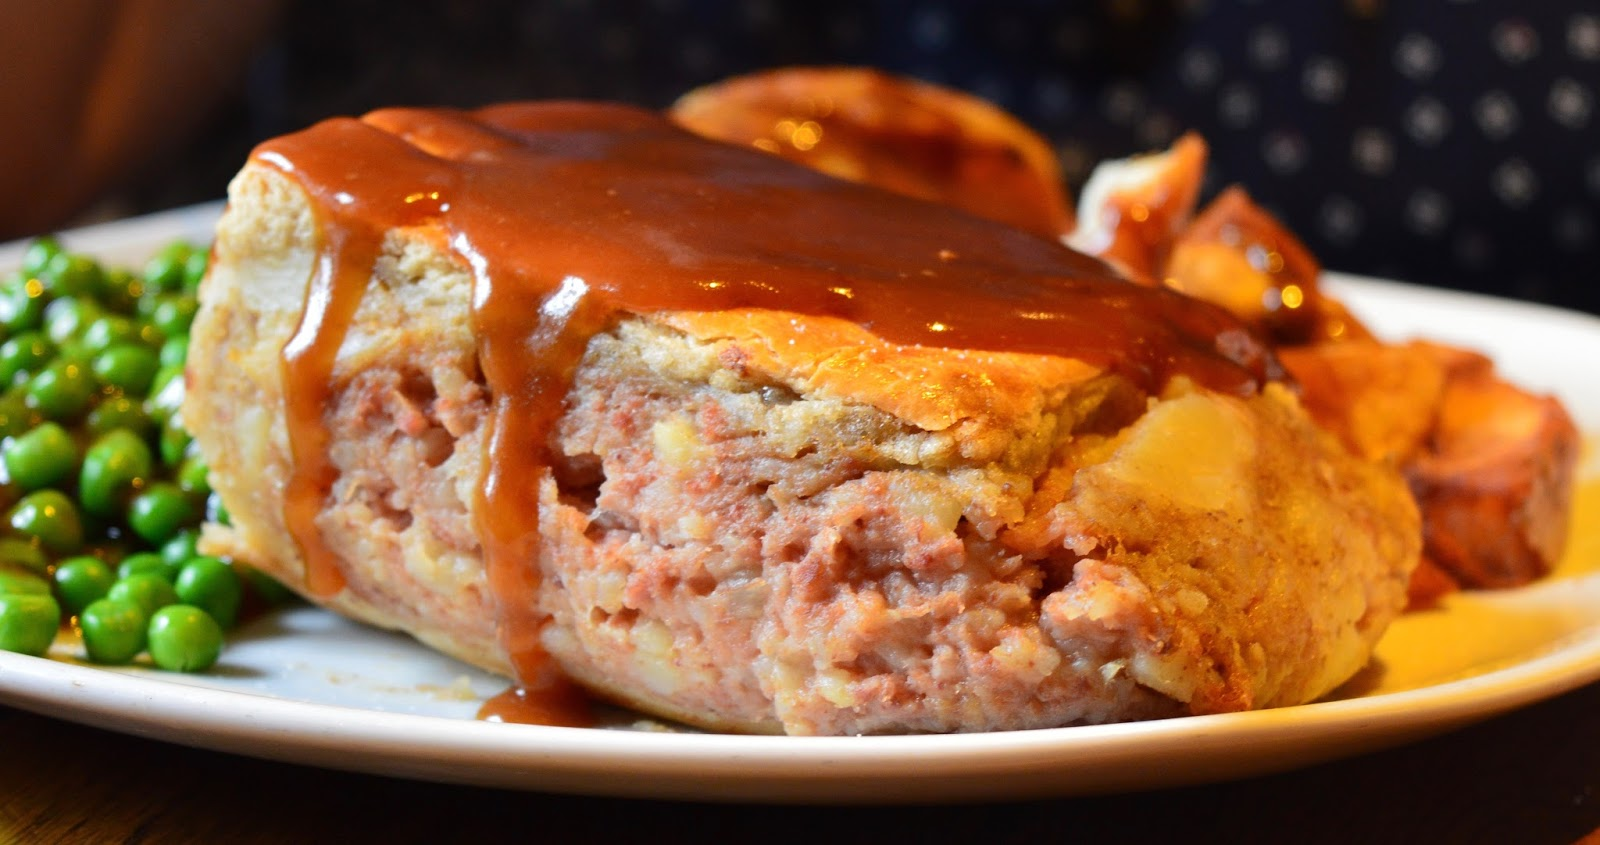 Overnight Stay at South Causey Inn | County Durham - Lunch menu Corned Beef Pie